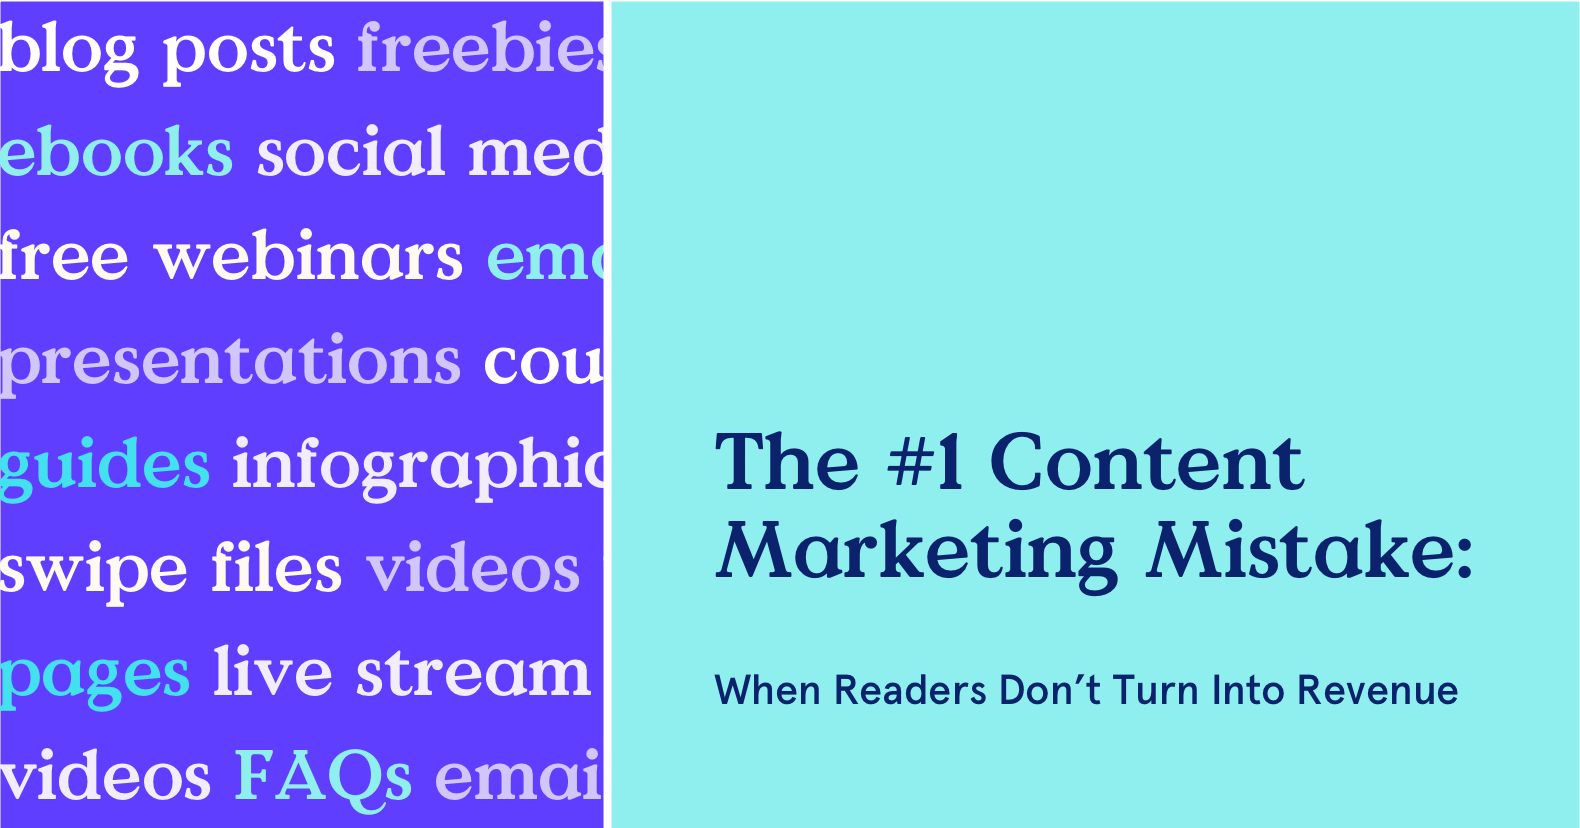 Are they reading your content but not buying?